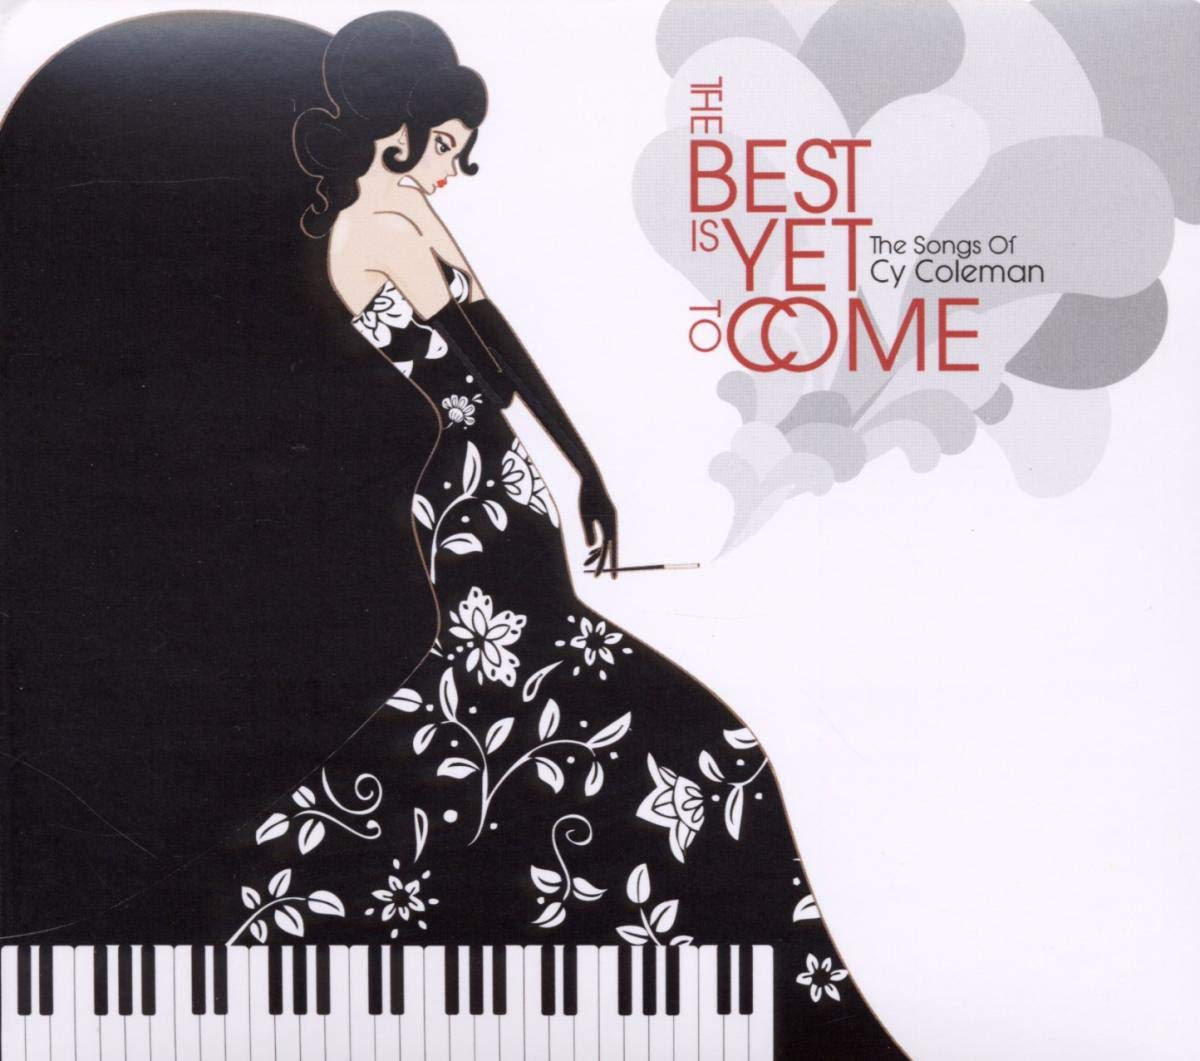 Best Is Yet to Come: Songs of Cy Coleman